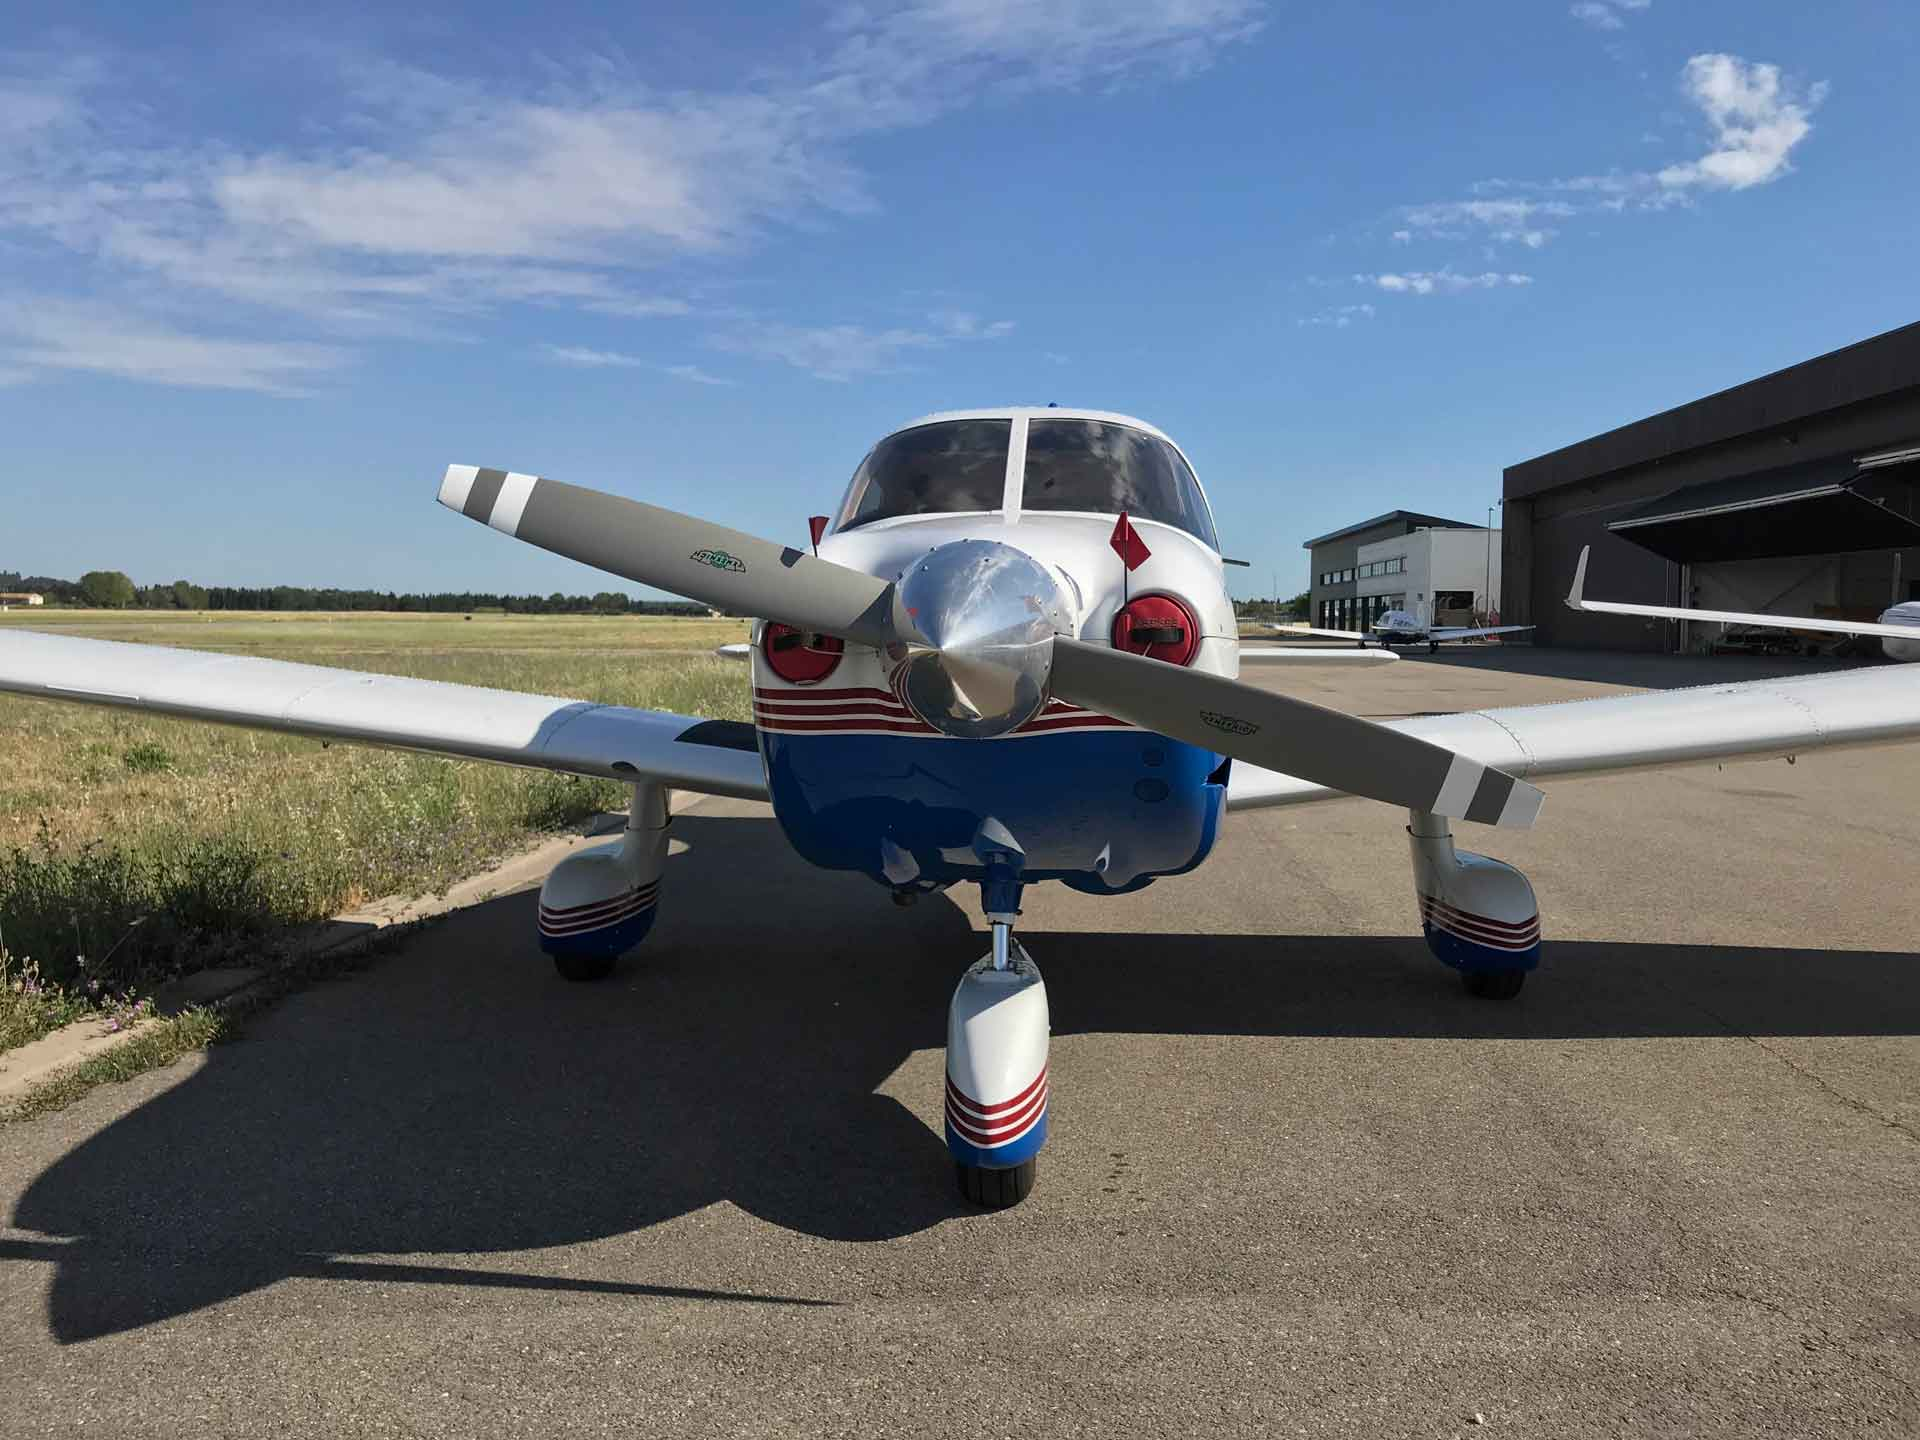 Disponible occasion ATA by Pelletier : 2000 PIPER PA 28-181 « Acher III »